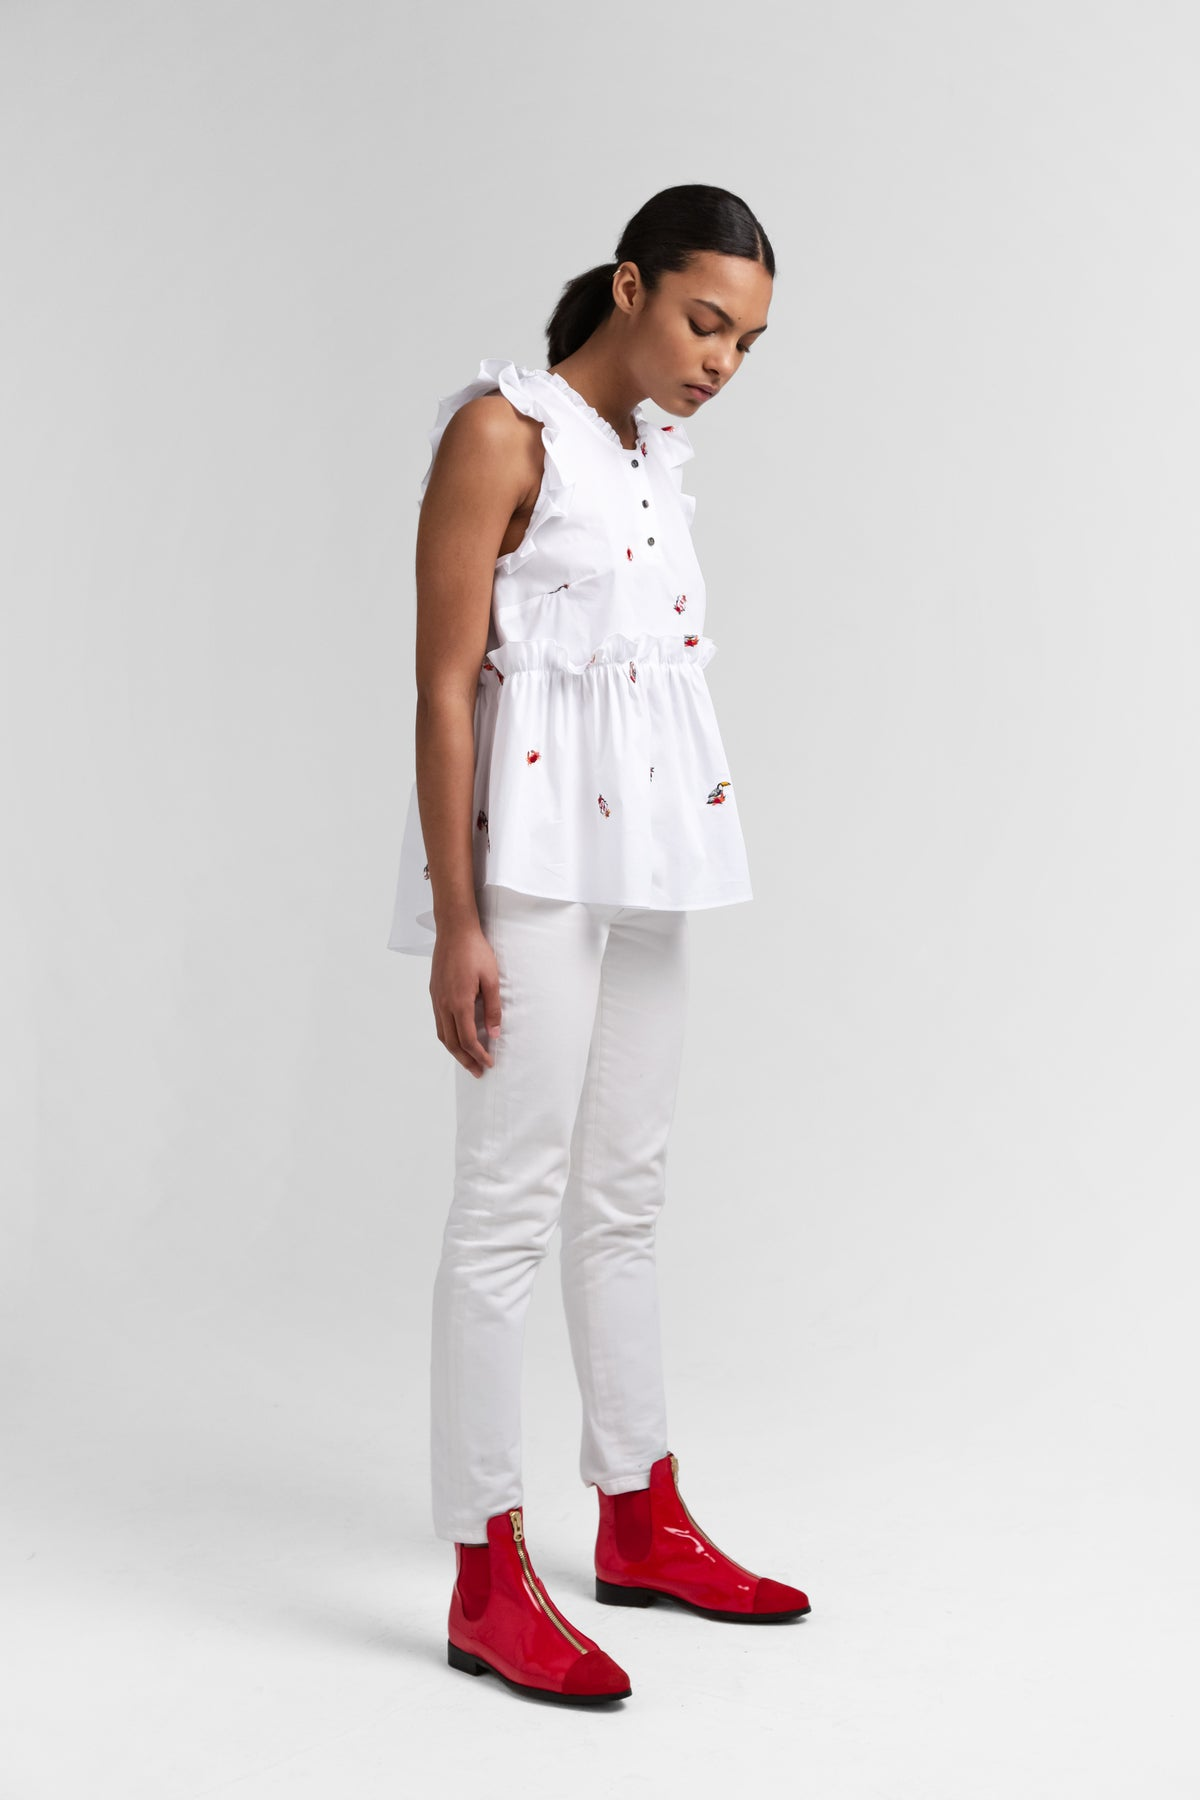 Kaya shirt in pirate embroideries